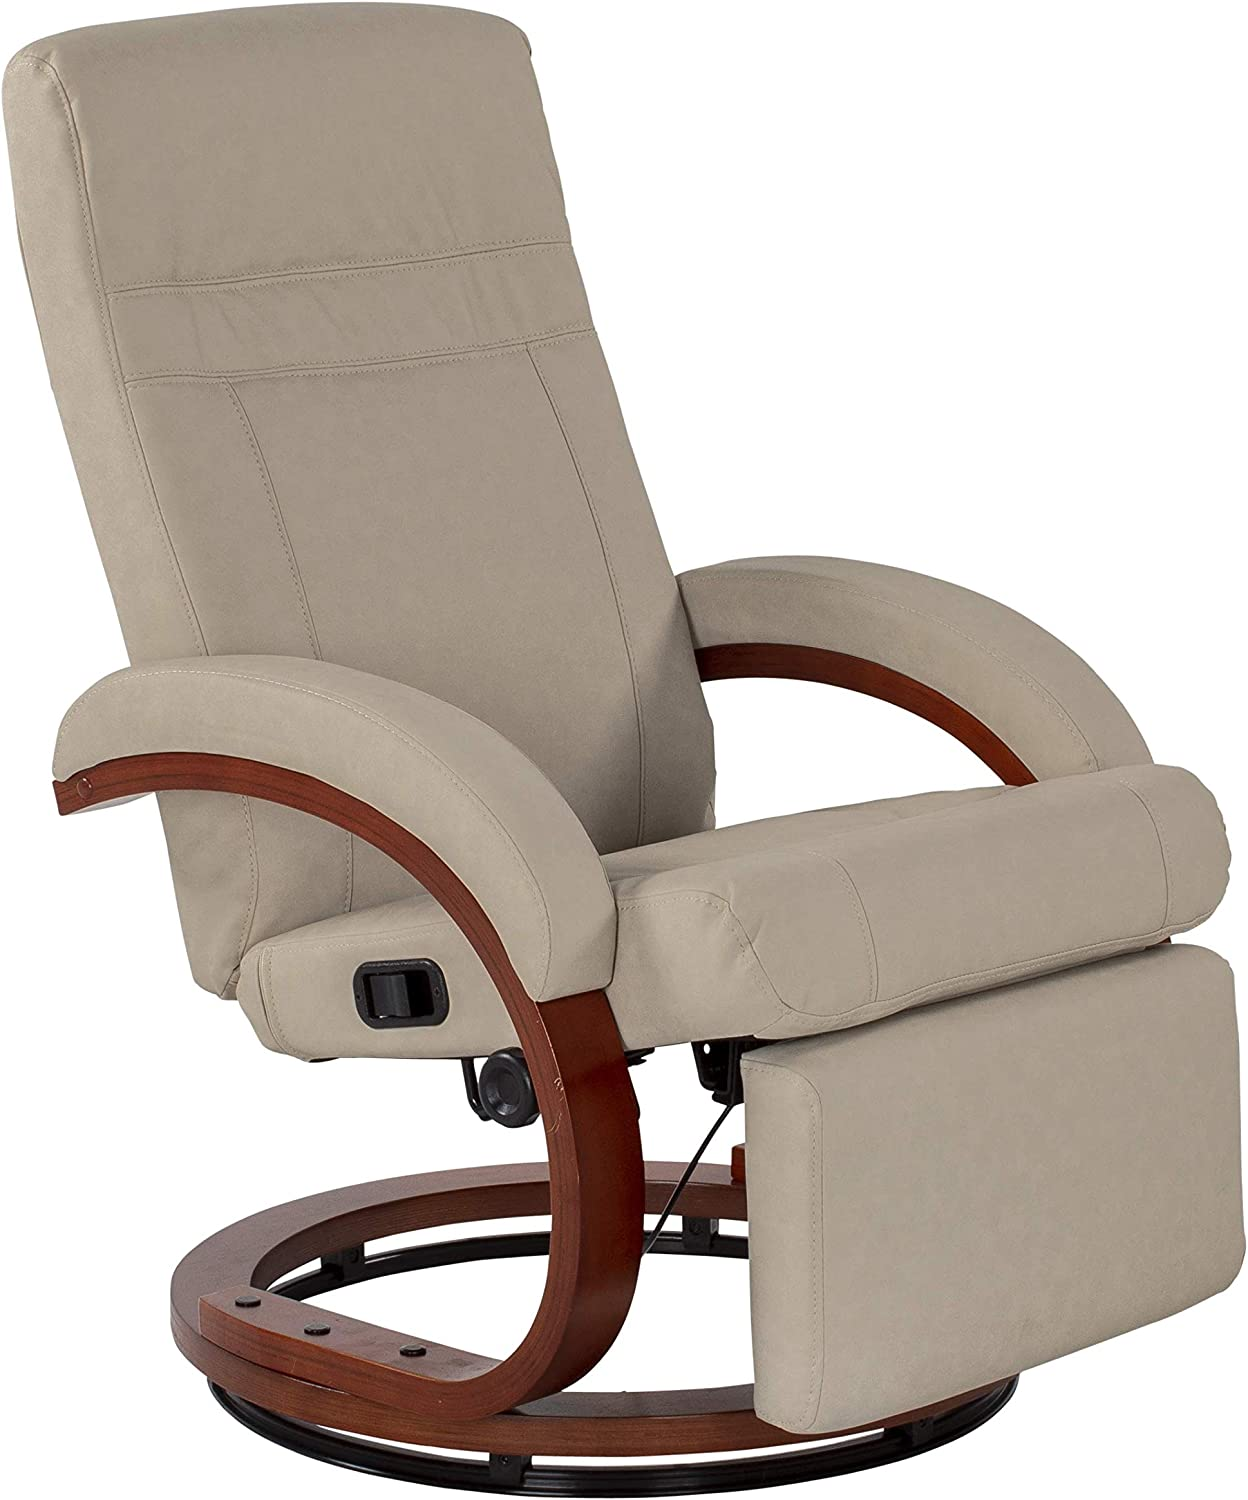 THOMAS PAYNE Euro Recliner Chair for 5th Wheel RVs, Travel Trailers and Motorhomes